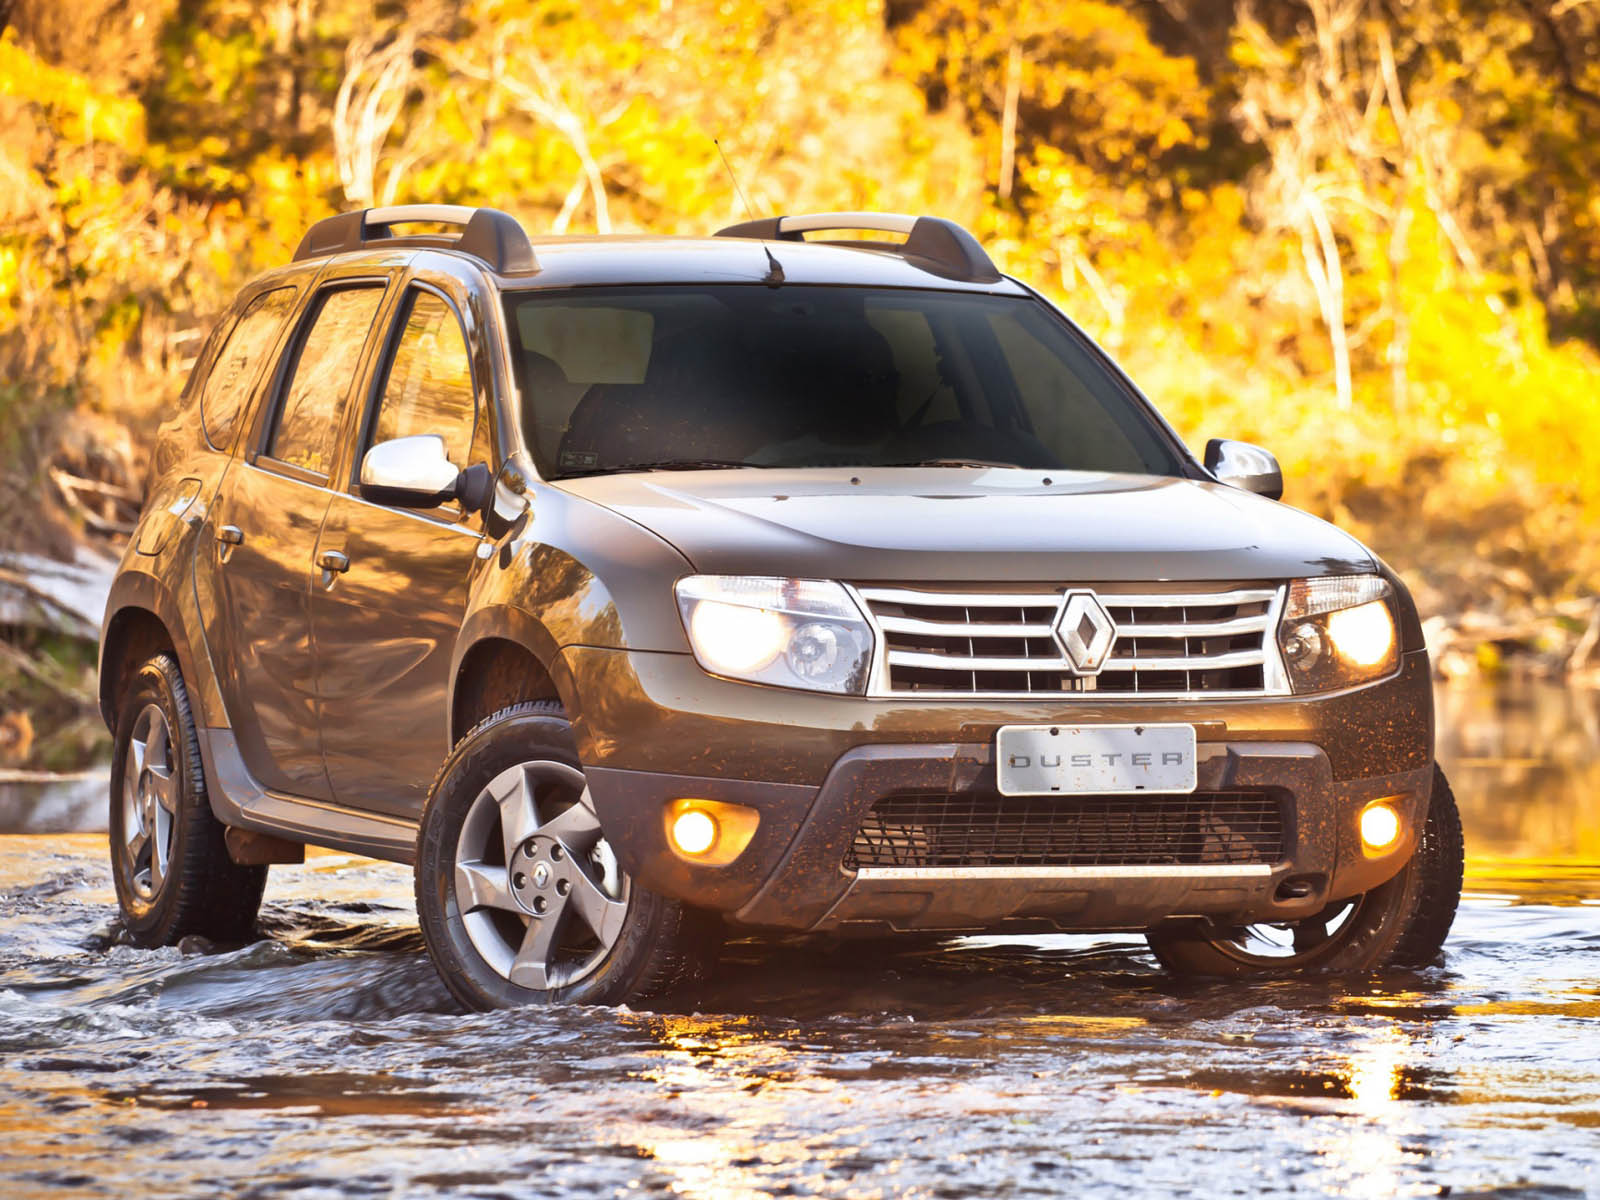 Cars Wallpapers: Wallpapers: Renault Duster Car